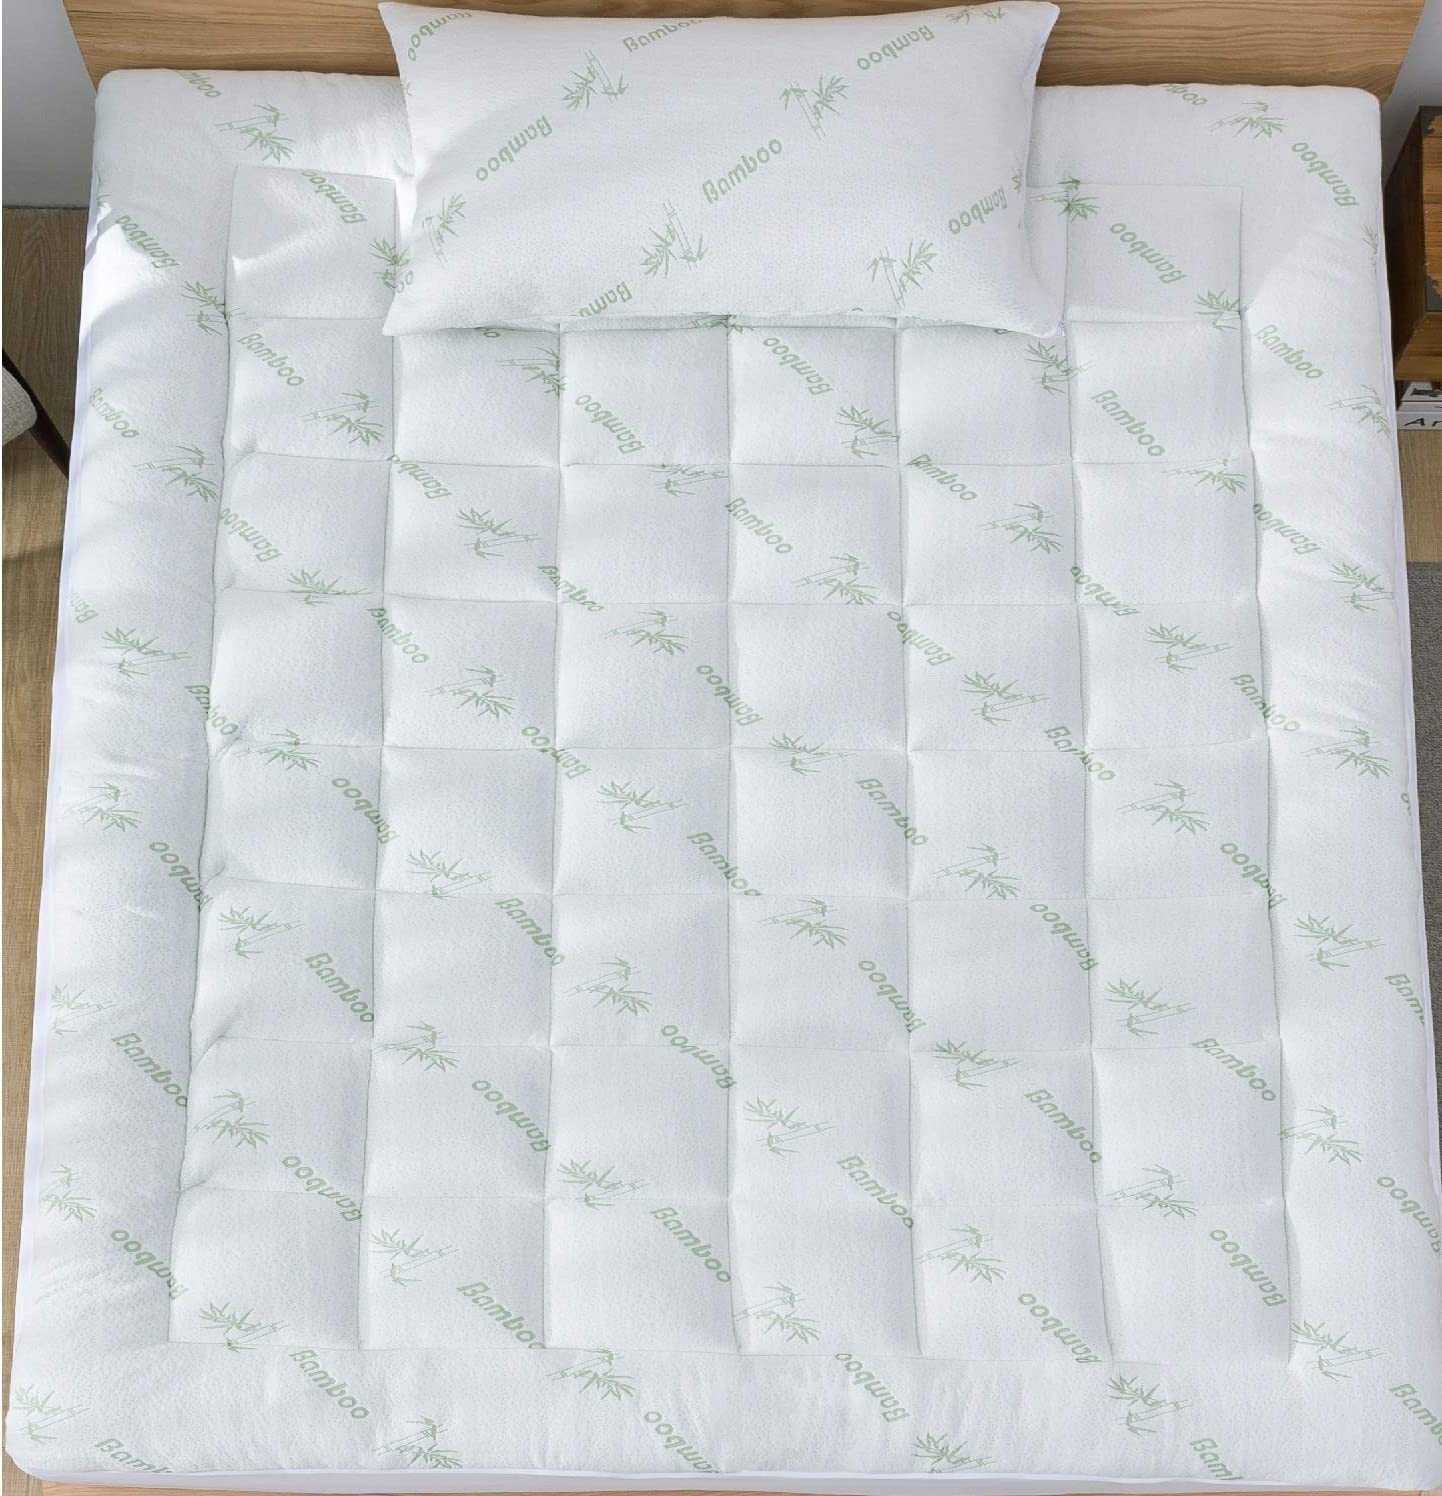 Niagara Sleep Solution Mattress Topper Twin 39x75 Quilted Down Alternative Extra Plush Anchor Band 4 Corner Elastic Protector Enhancer Extra Deep Fits 8-21Inches Soft White Bed Cover